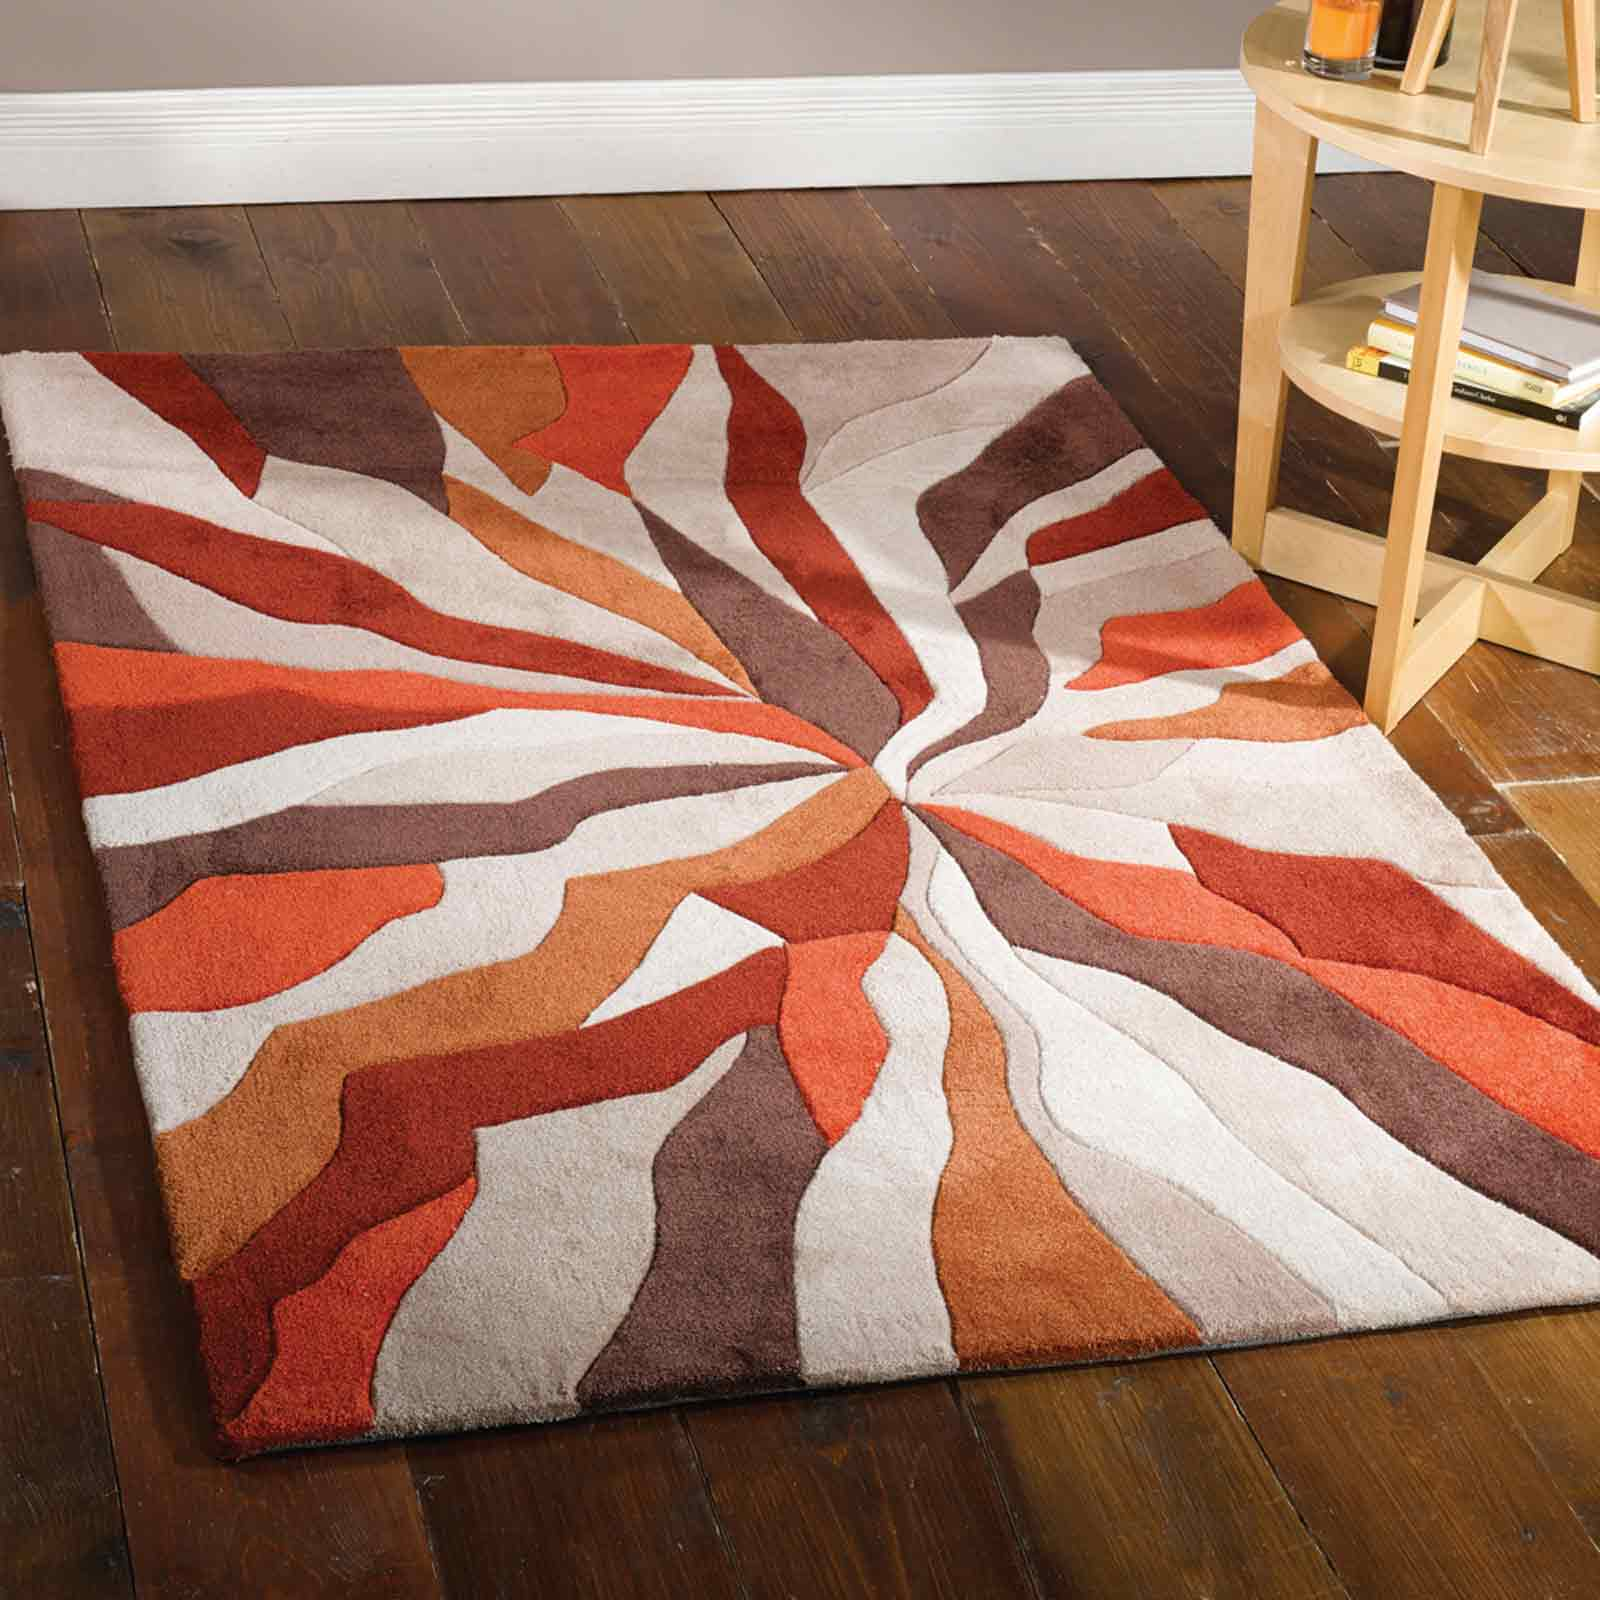 Infinite Splinter Rugs in Orange